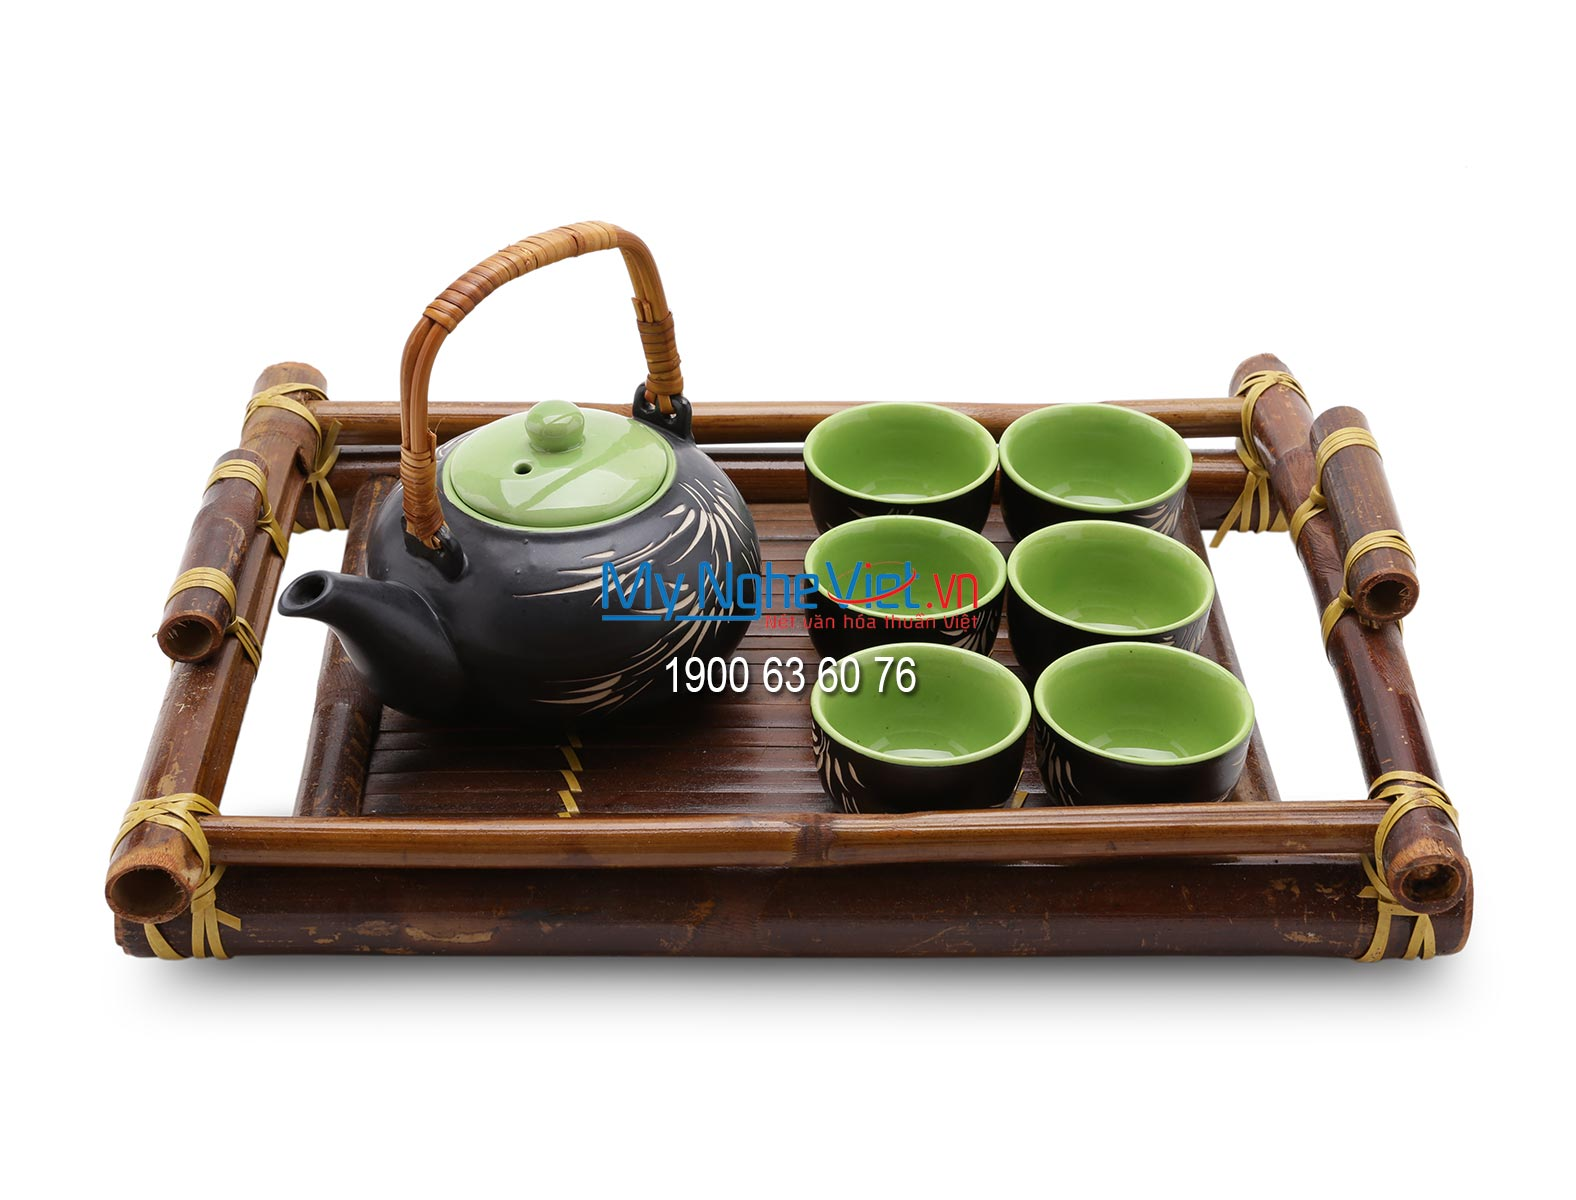 Bat Trang Tea set with Bamboo Pattern and Bamboo Tray MNV-TS062-2